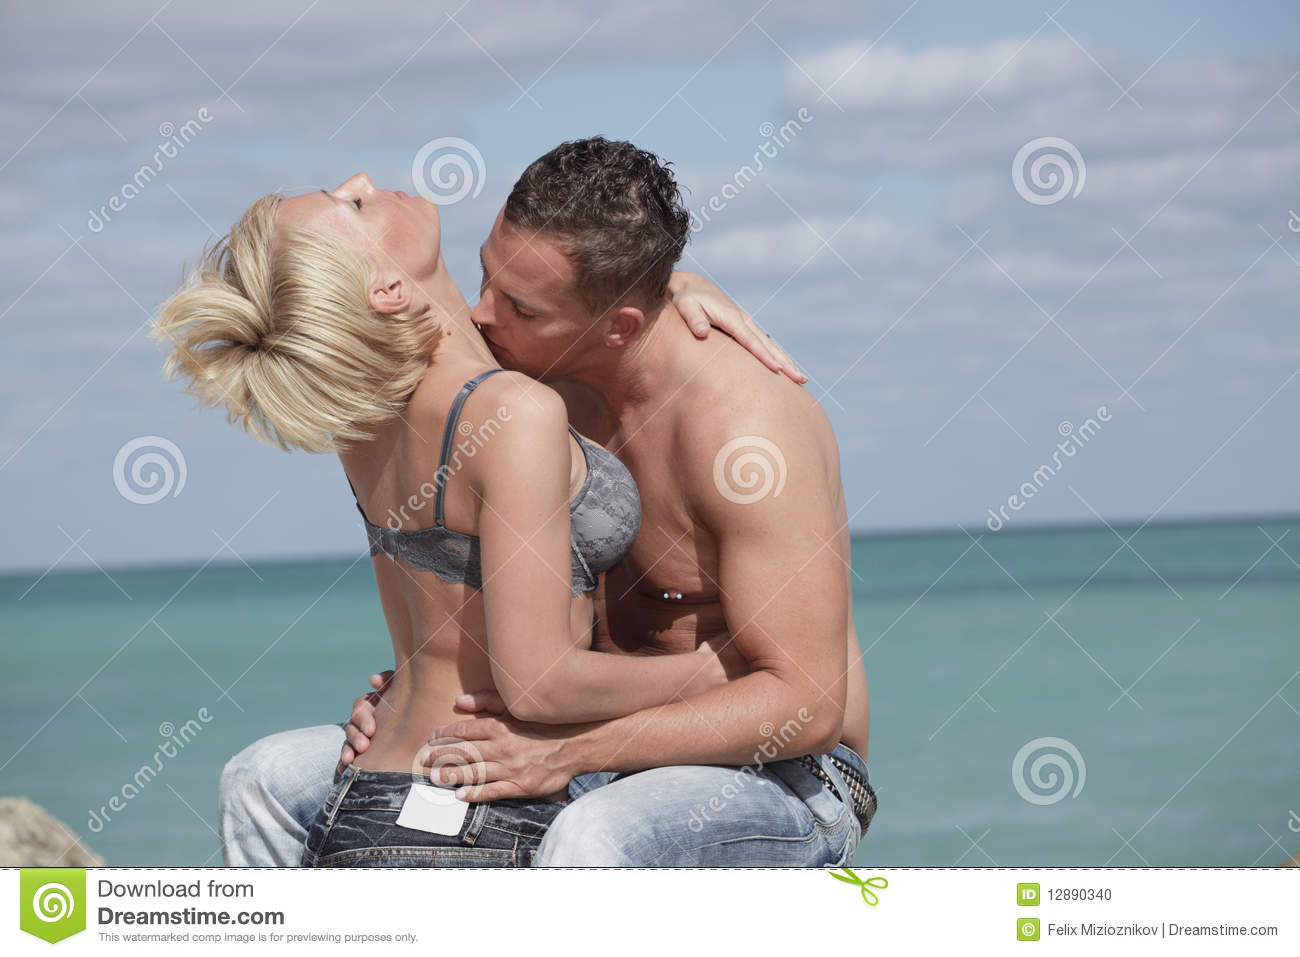 Roflzone best ways to kiss your girlfriend